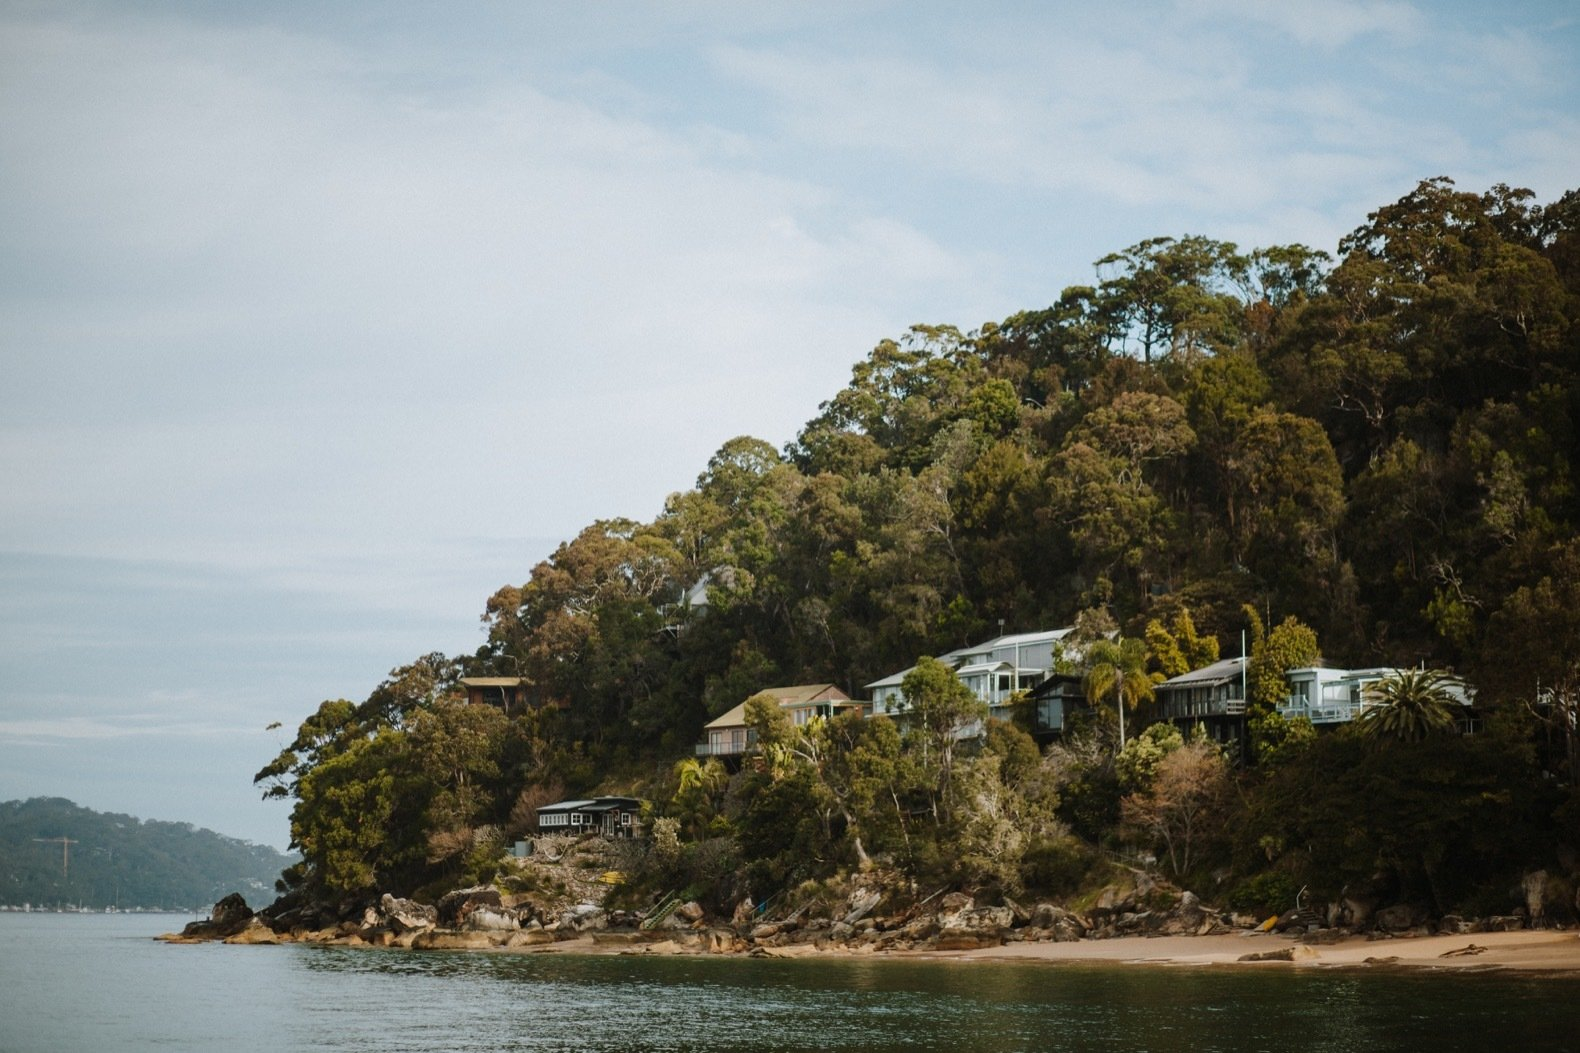 Outdoor, Trees, and Boulders The shack is only accessible via two ways: taking a boat across Pittwater Bay or hiking through the Ku-ring-gai Chase National Park.  Photo 2 of 11 in A 1920s Fisherman's Shack in Australia Breathes New Life as a Cozy, Unique Rental